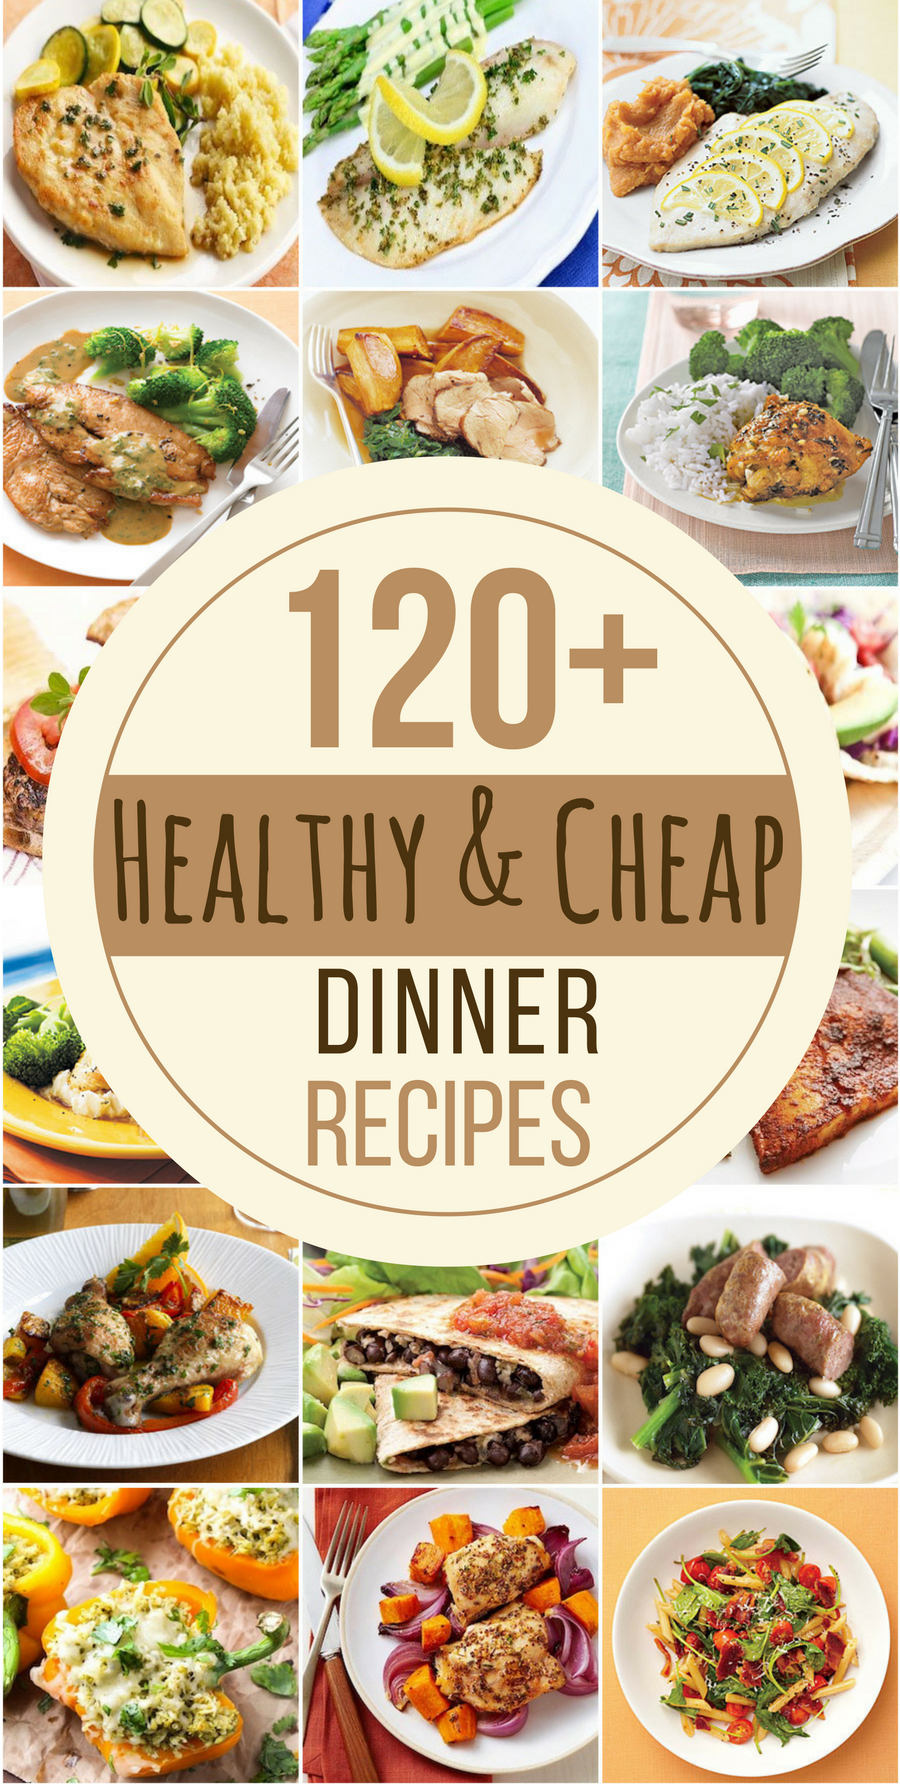 120 healthy and cheap dinner recipes comida recetas y recetas de 120 healthy and cheap dinner recipes forumfinder Image collections